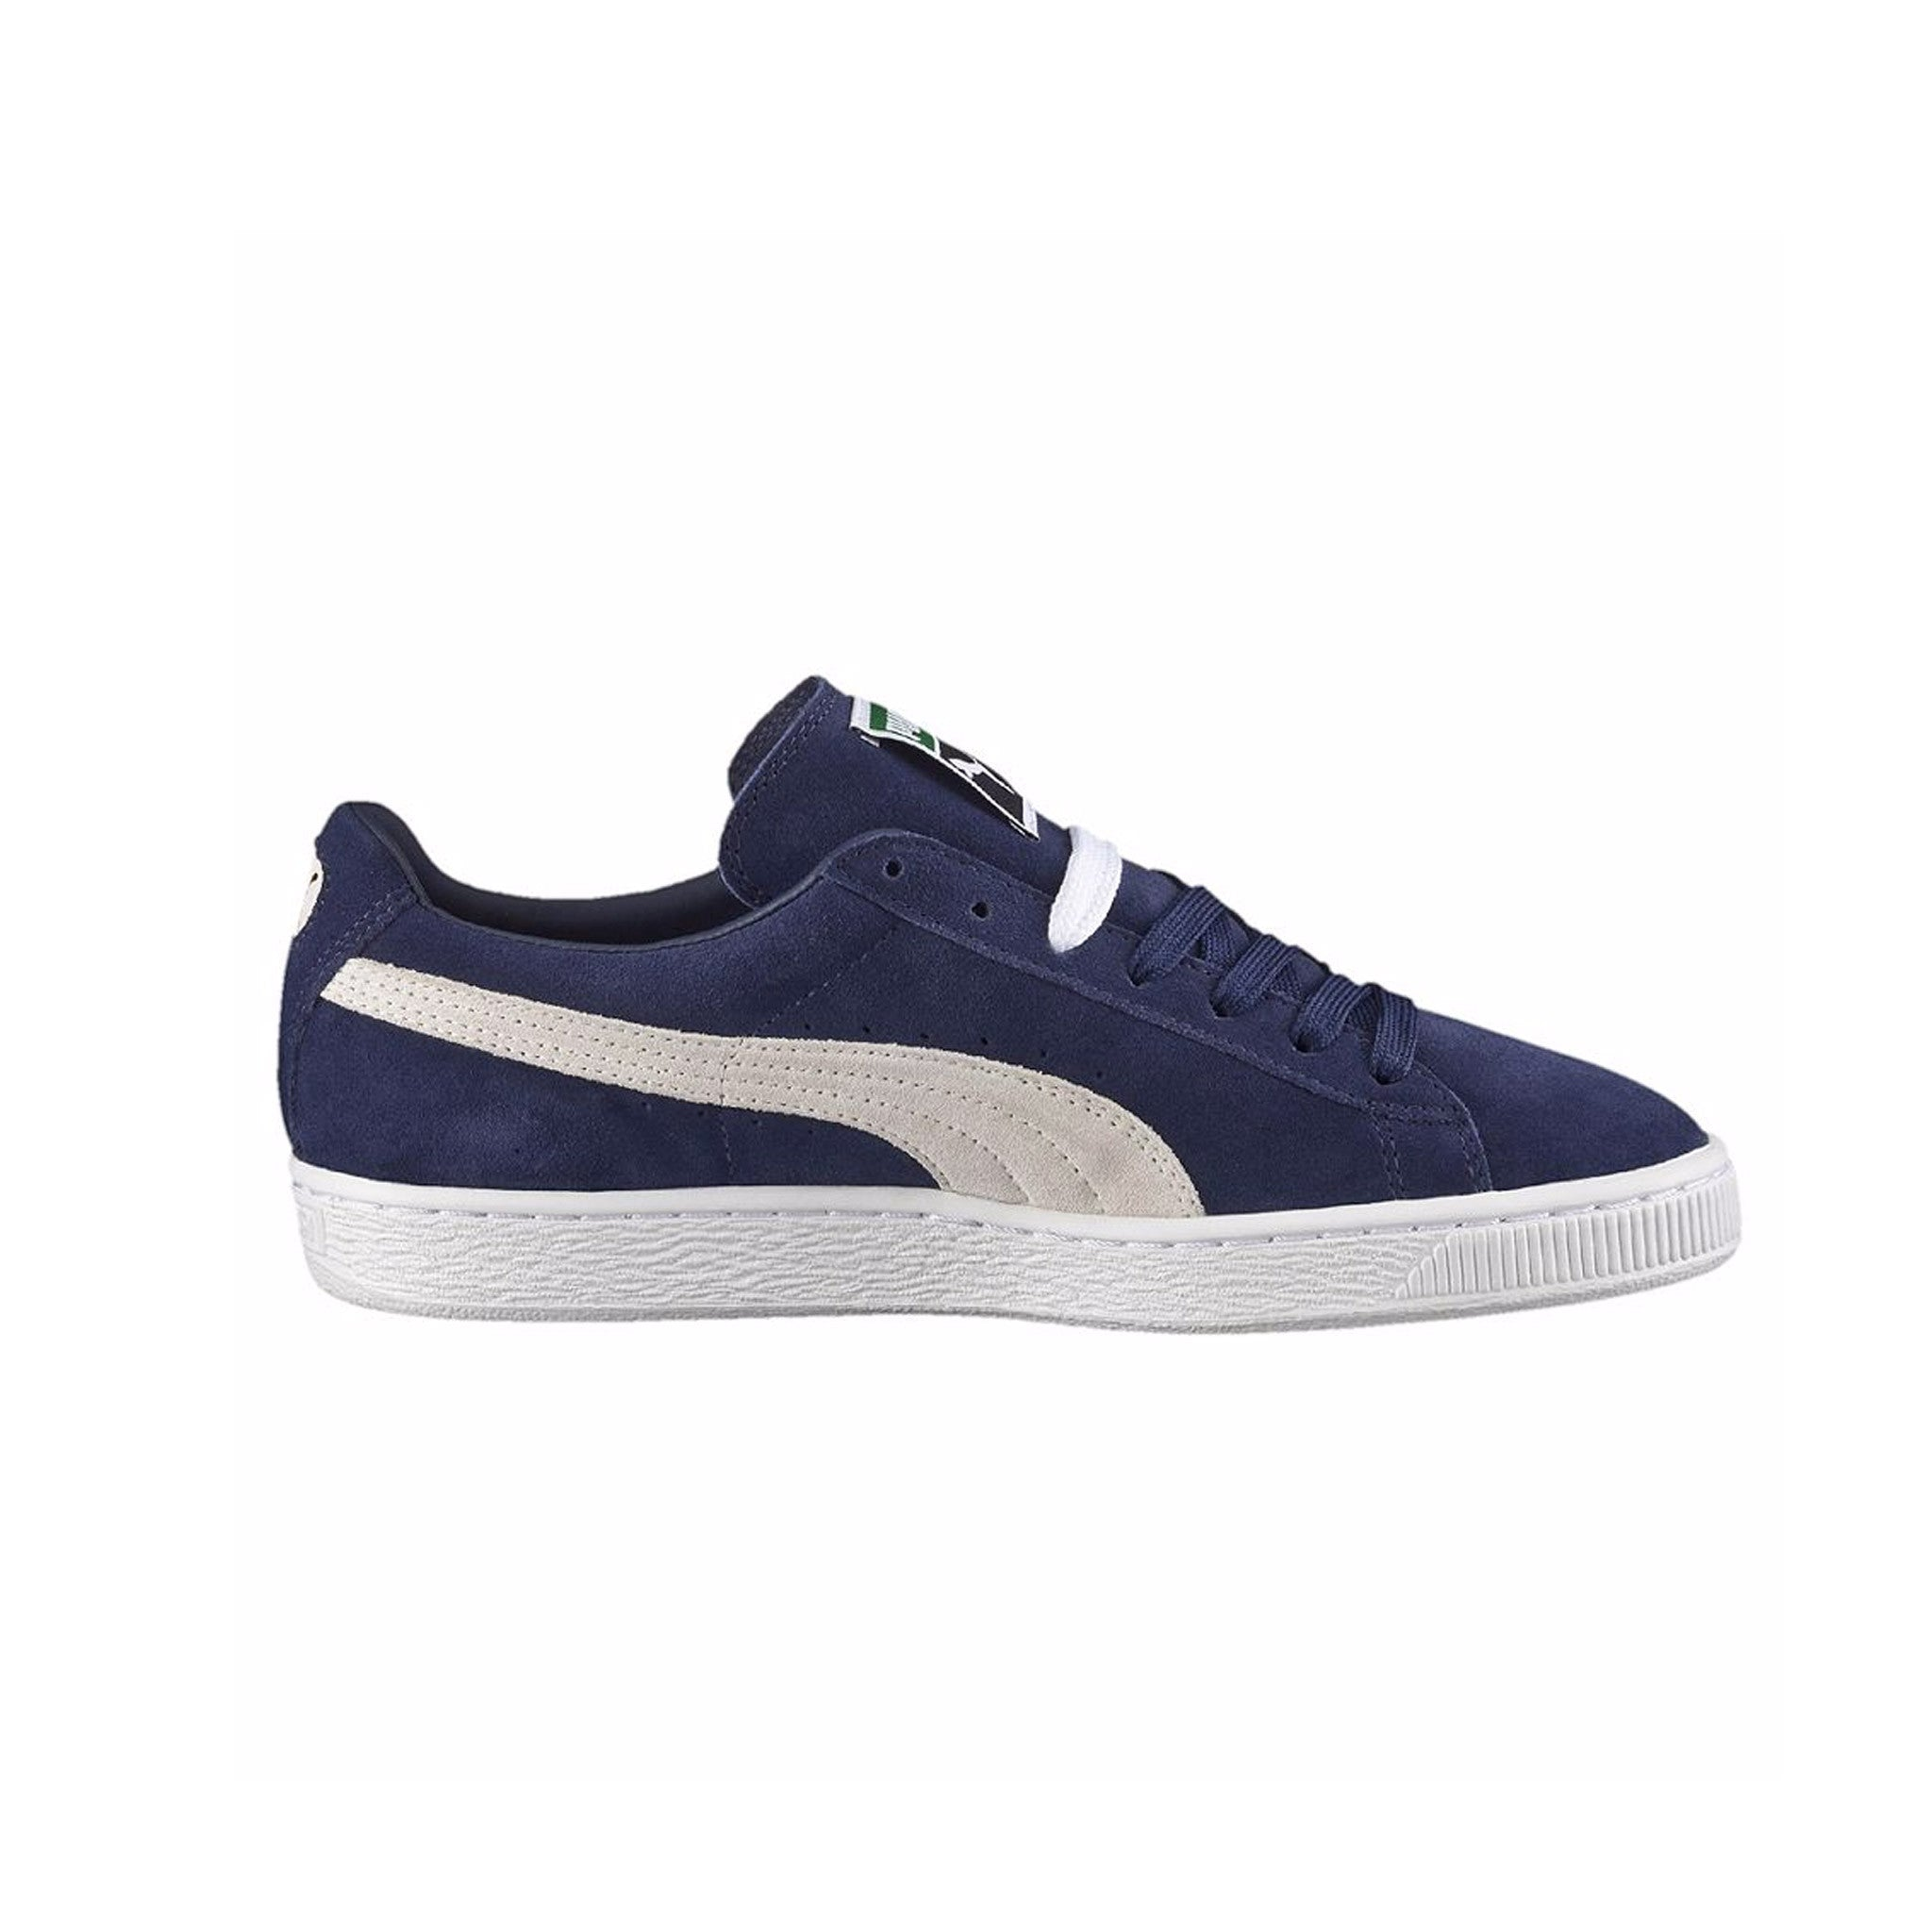 Suede Classic Puma Sneakers Peacoat Side View